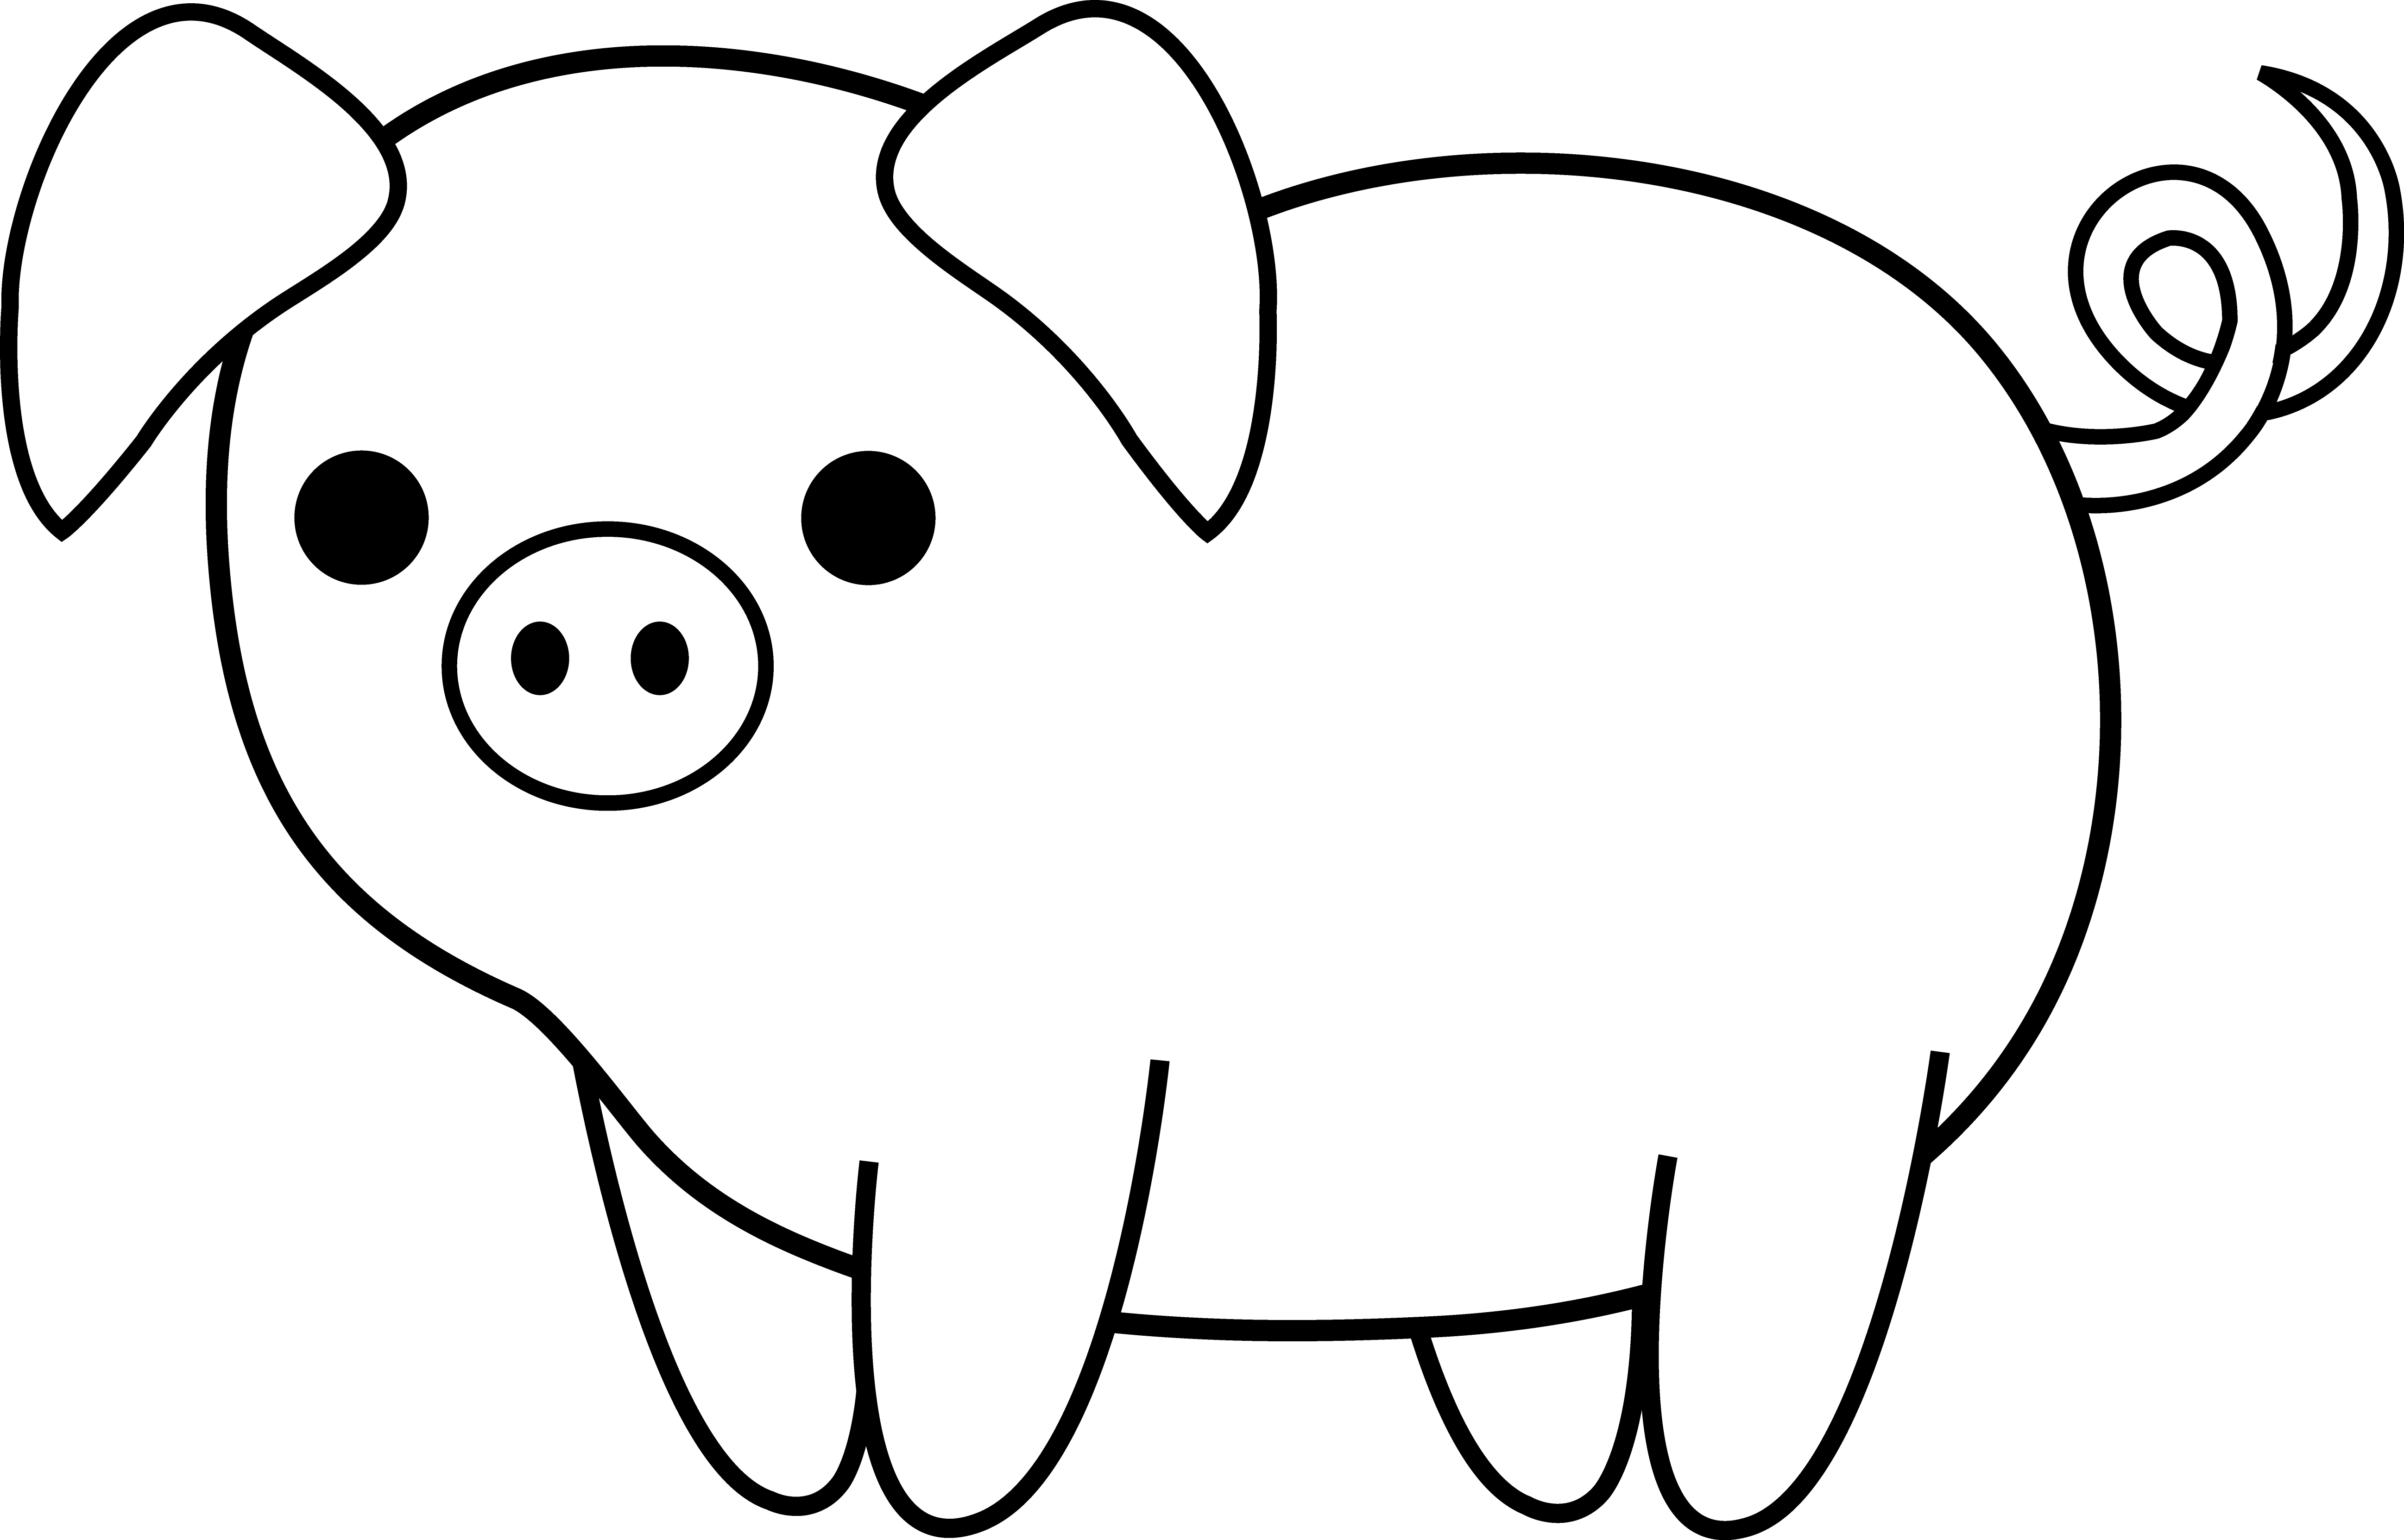 Clipart animals pig. Cute black and white